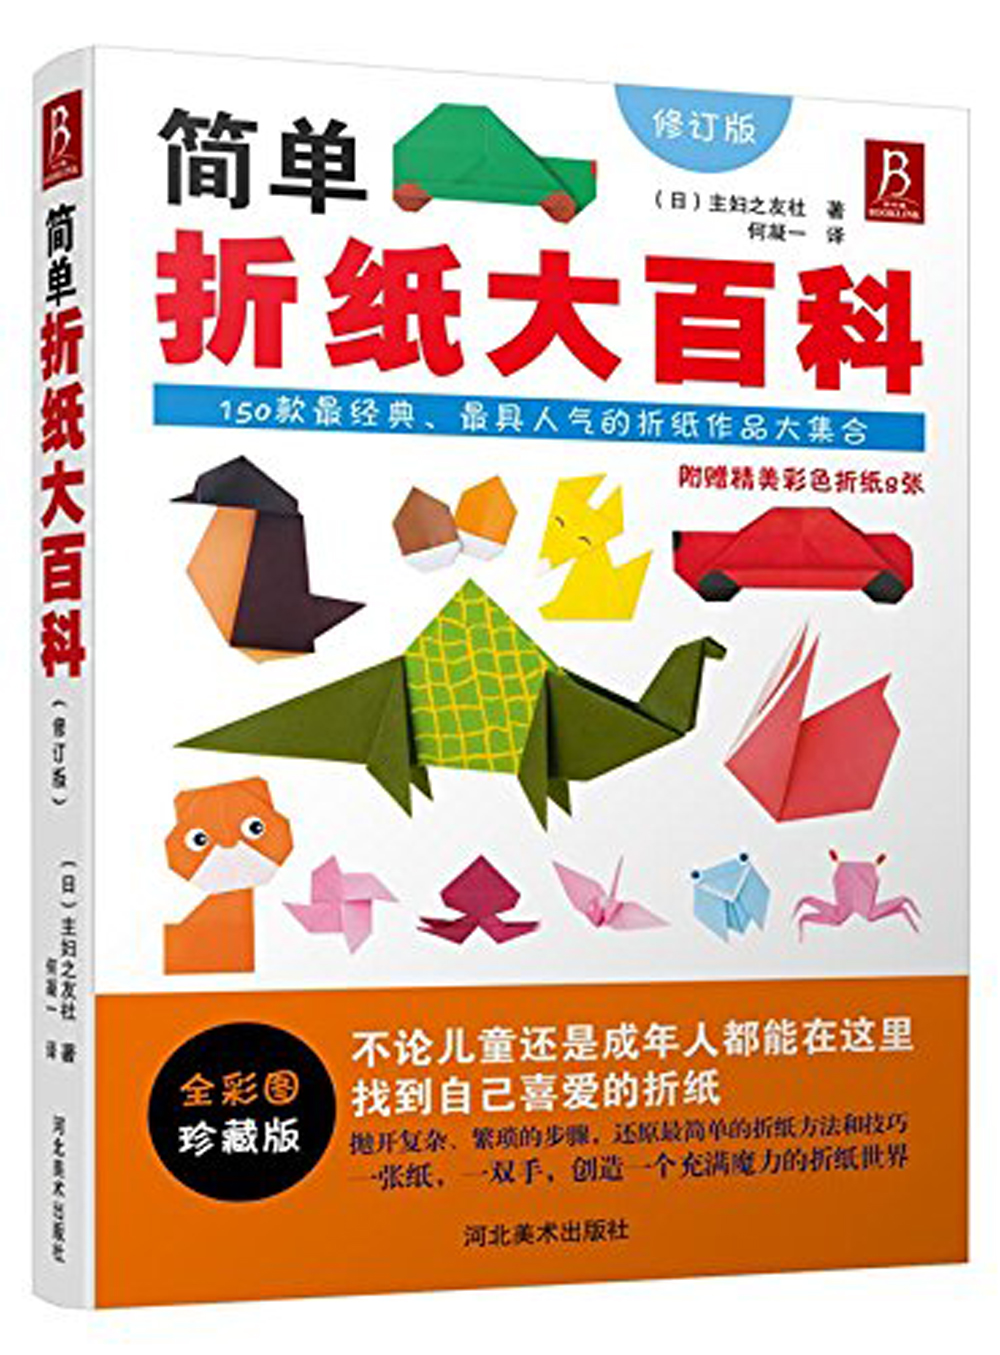 Simple origami Encyclopedia / Chinese Handmade Carft Book the fables encyclopedia